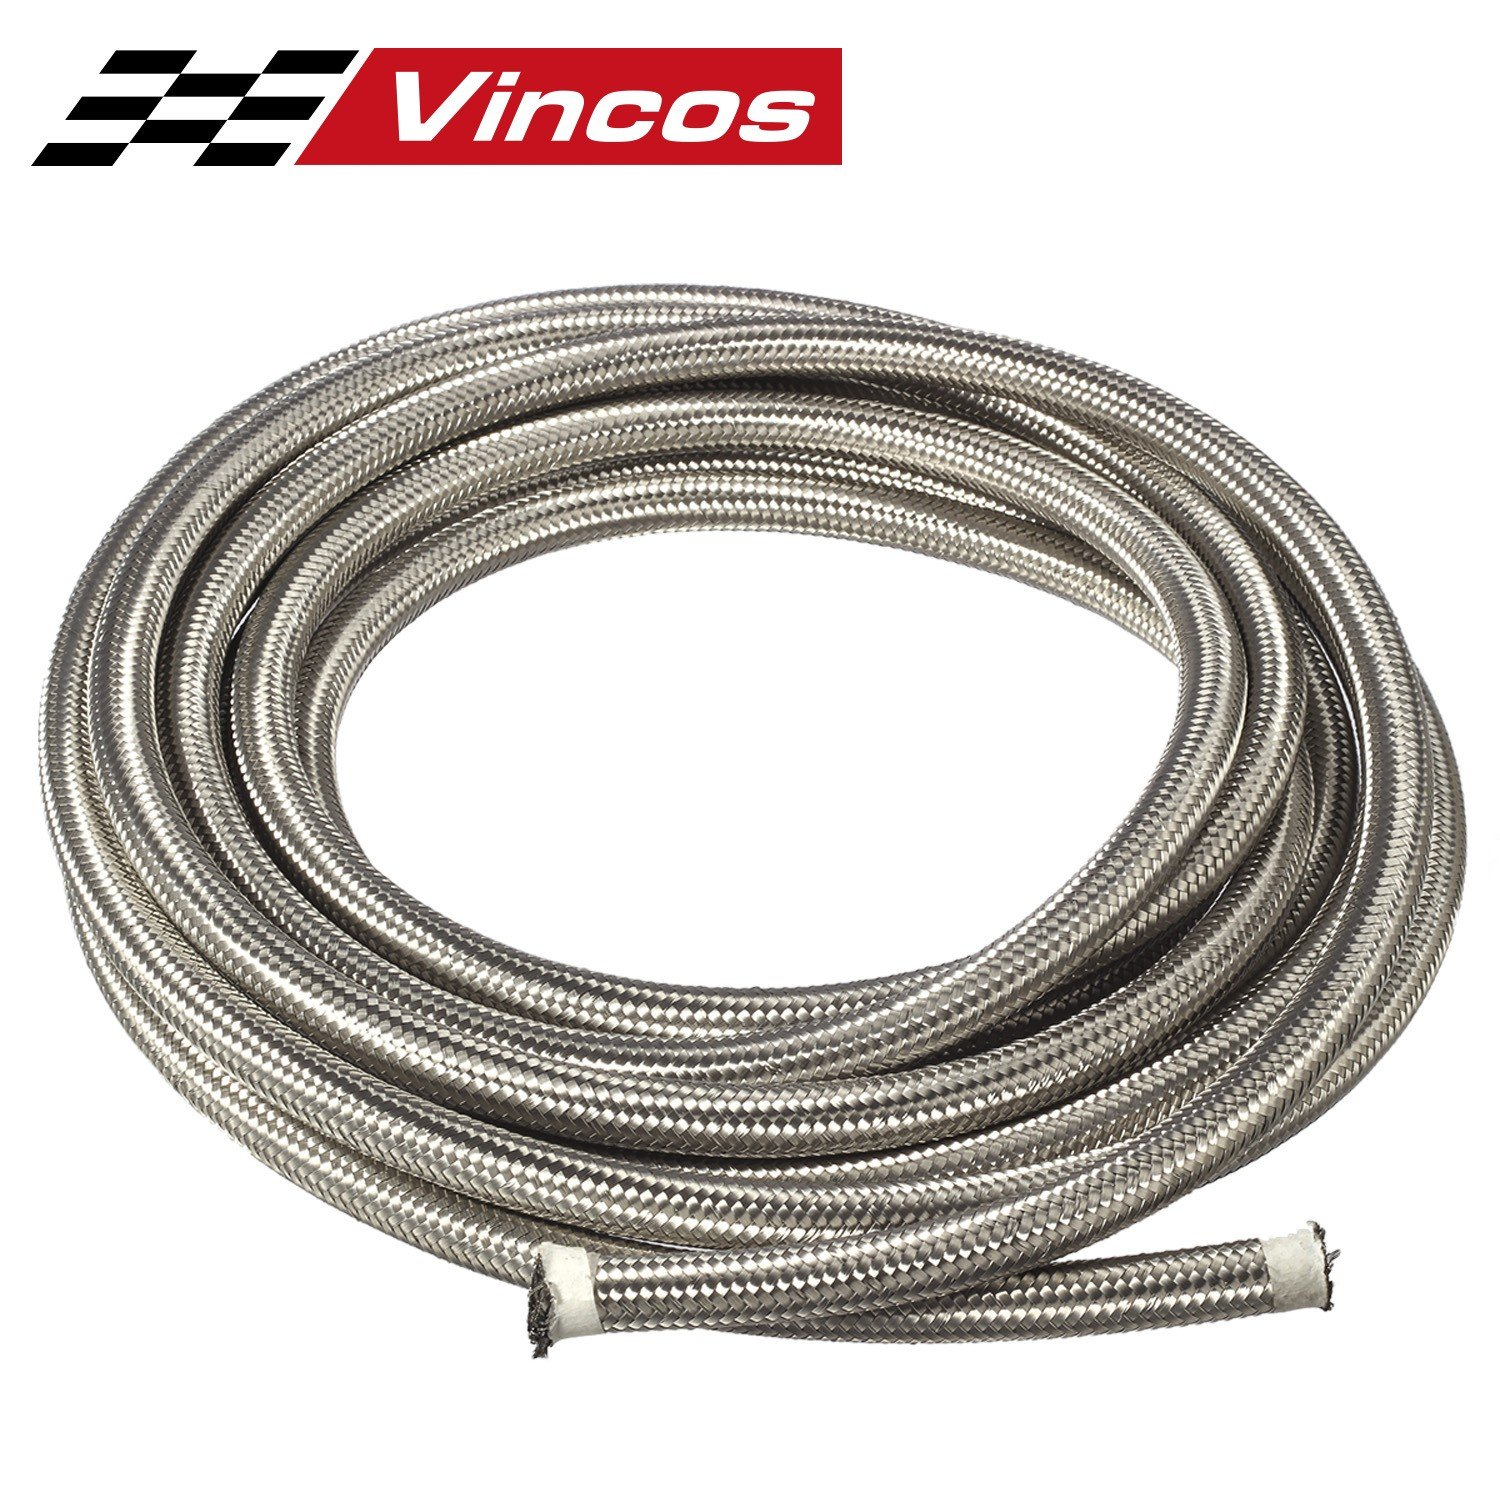 20 Ft 6AN AN6 (3/8') Universal Braided Stainless Steel CPE Oil Fuel Gas Line Hose PartsSquare